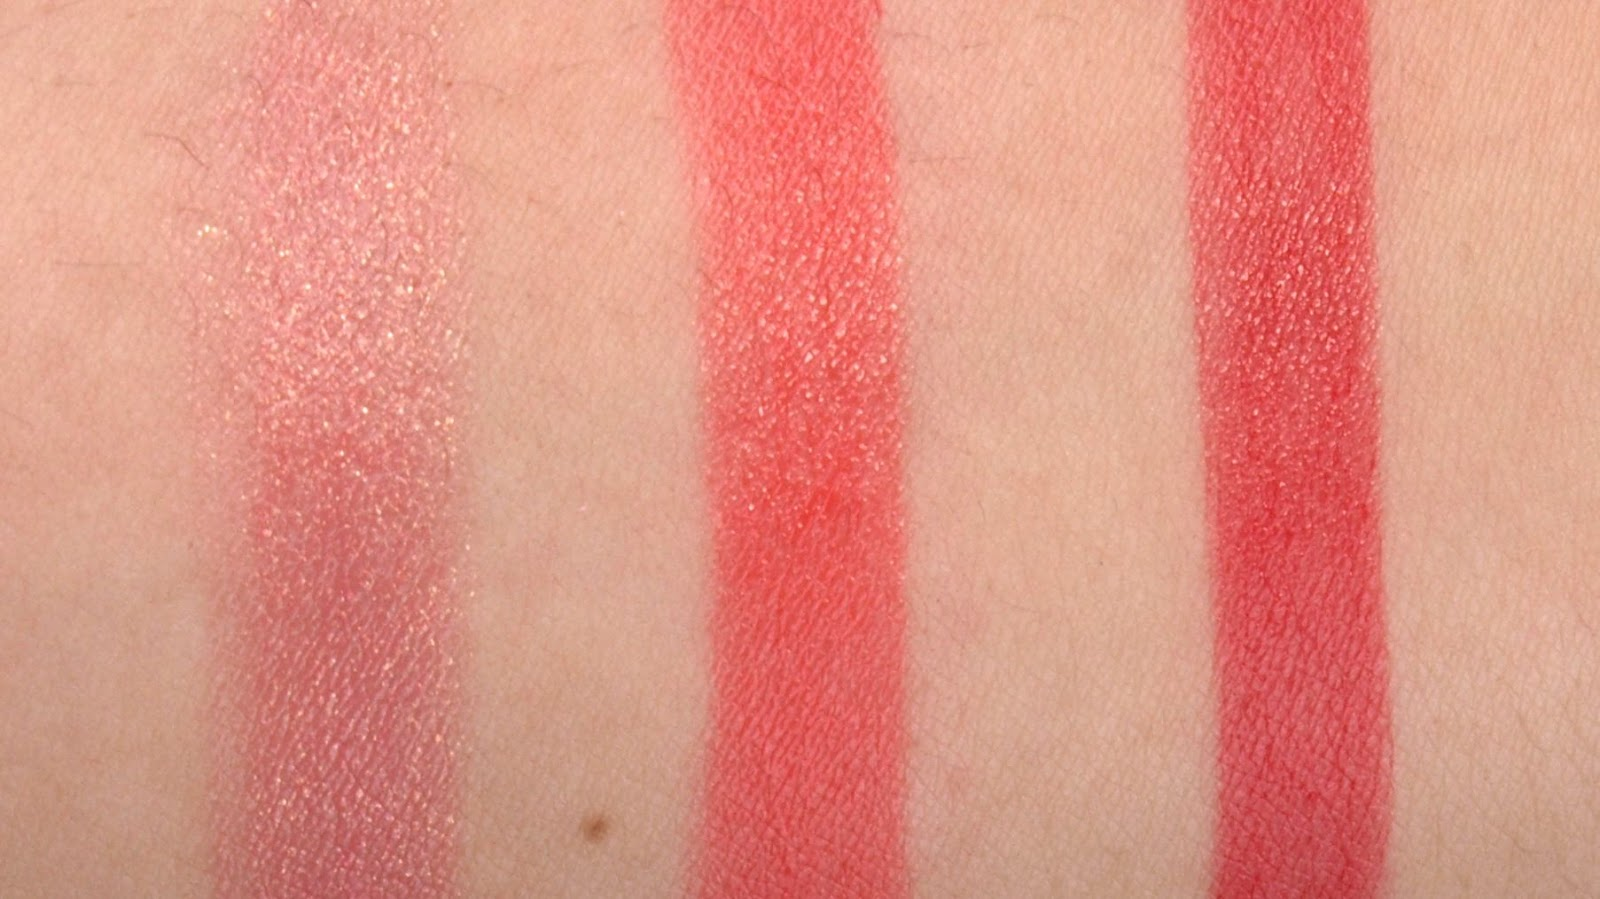 Guerlain KissKiss Shaping Cream Lip Color: Review and Swatches